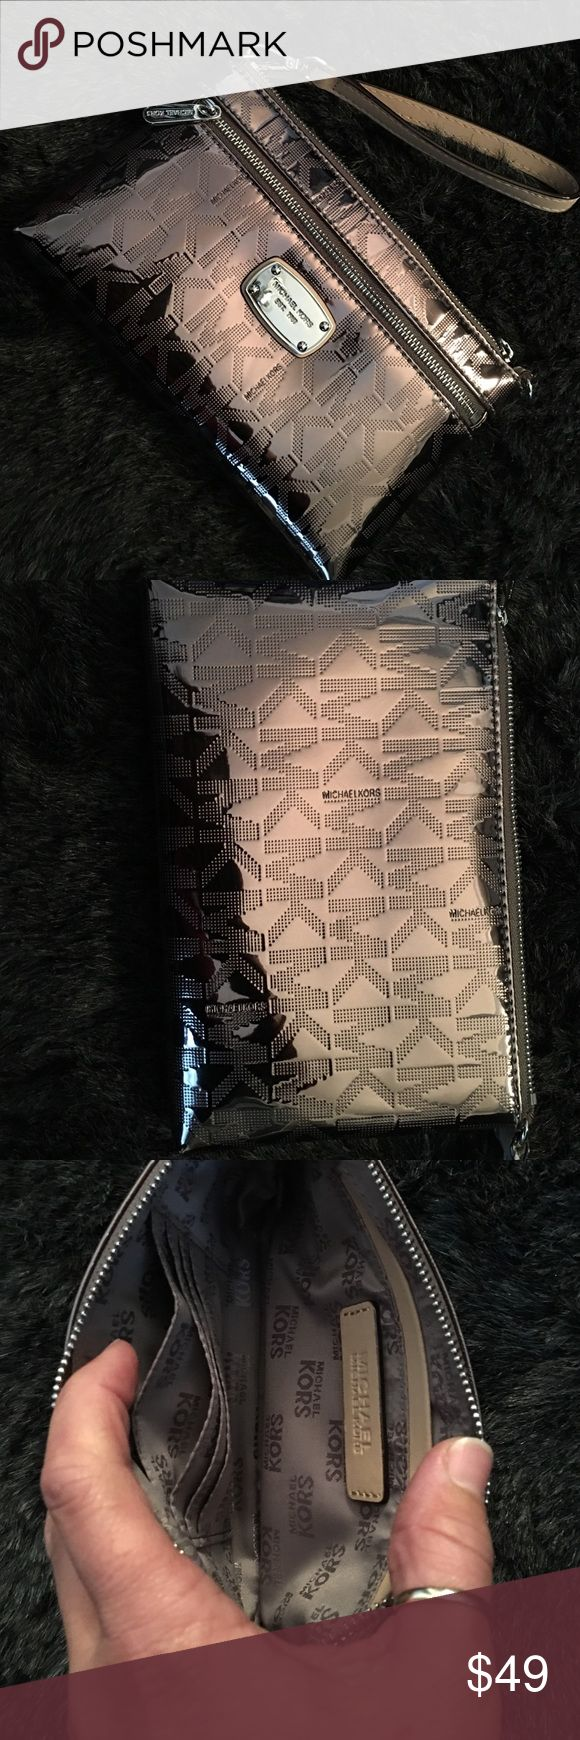 Michael Kors purse Brand new, never used!  Pewter color. Michael Kors Bags Clutches & Wristlets